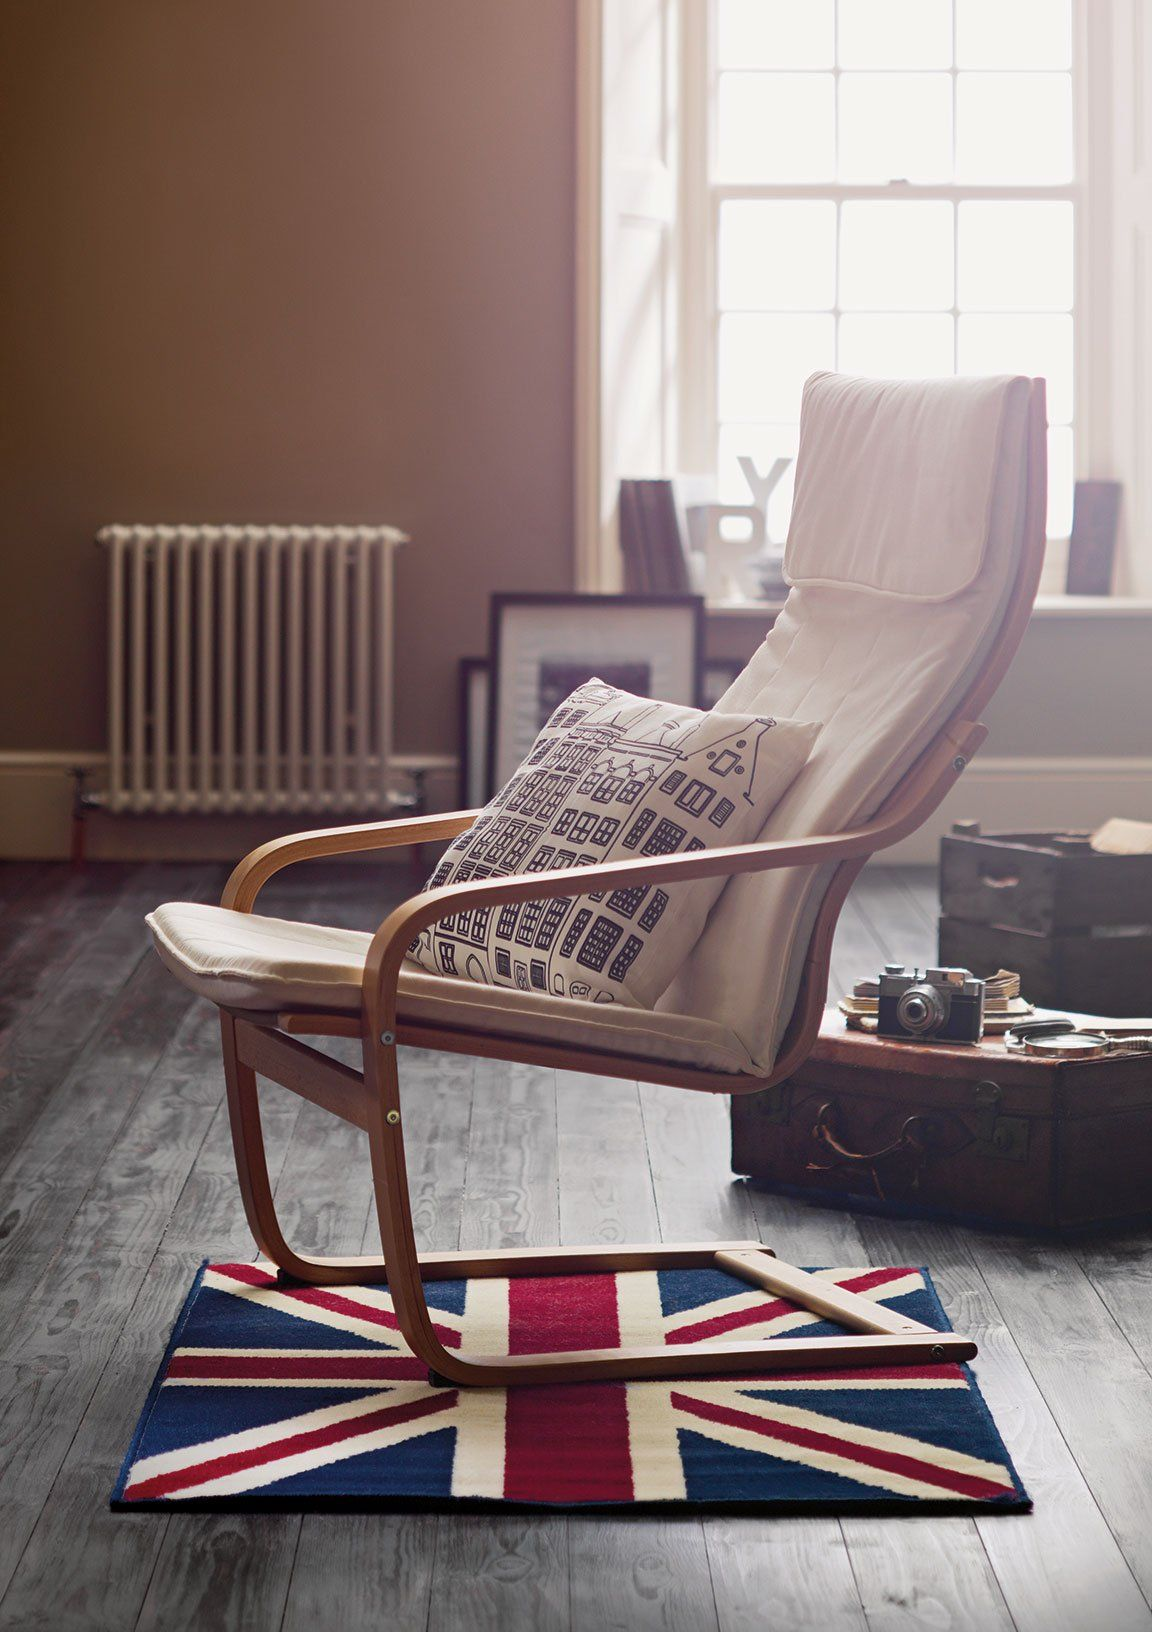 The Argos Union Jack Rug, the perfect compliment for the